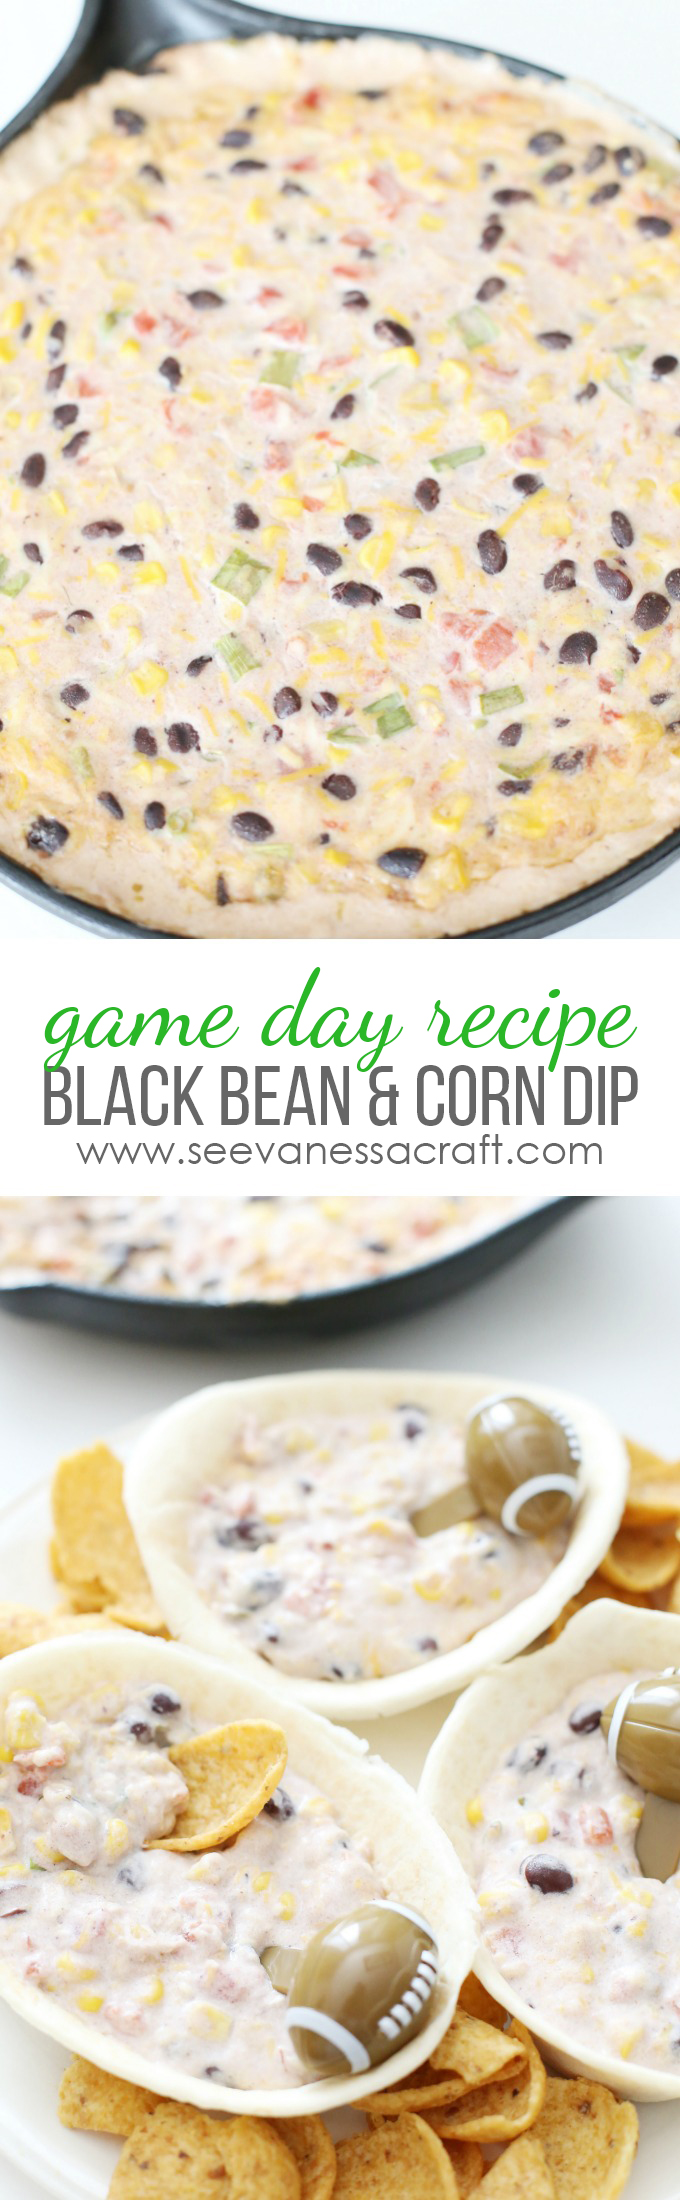 Cheesy Black Bean and Corn Dip Recipe copy